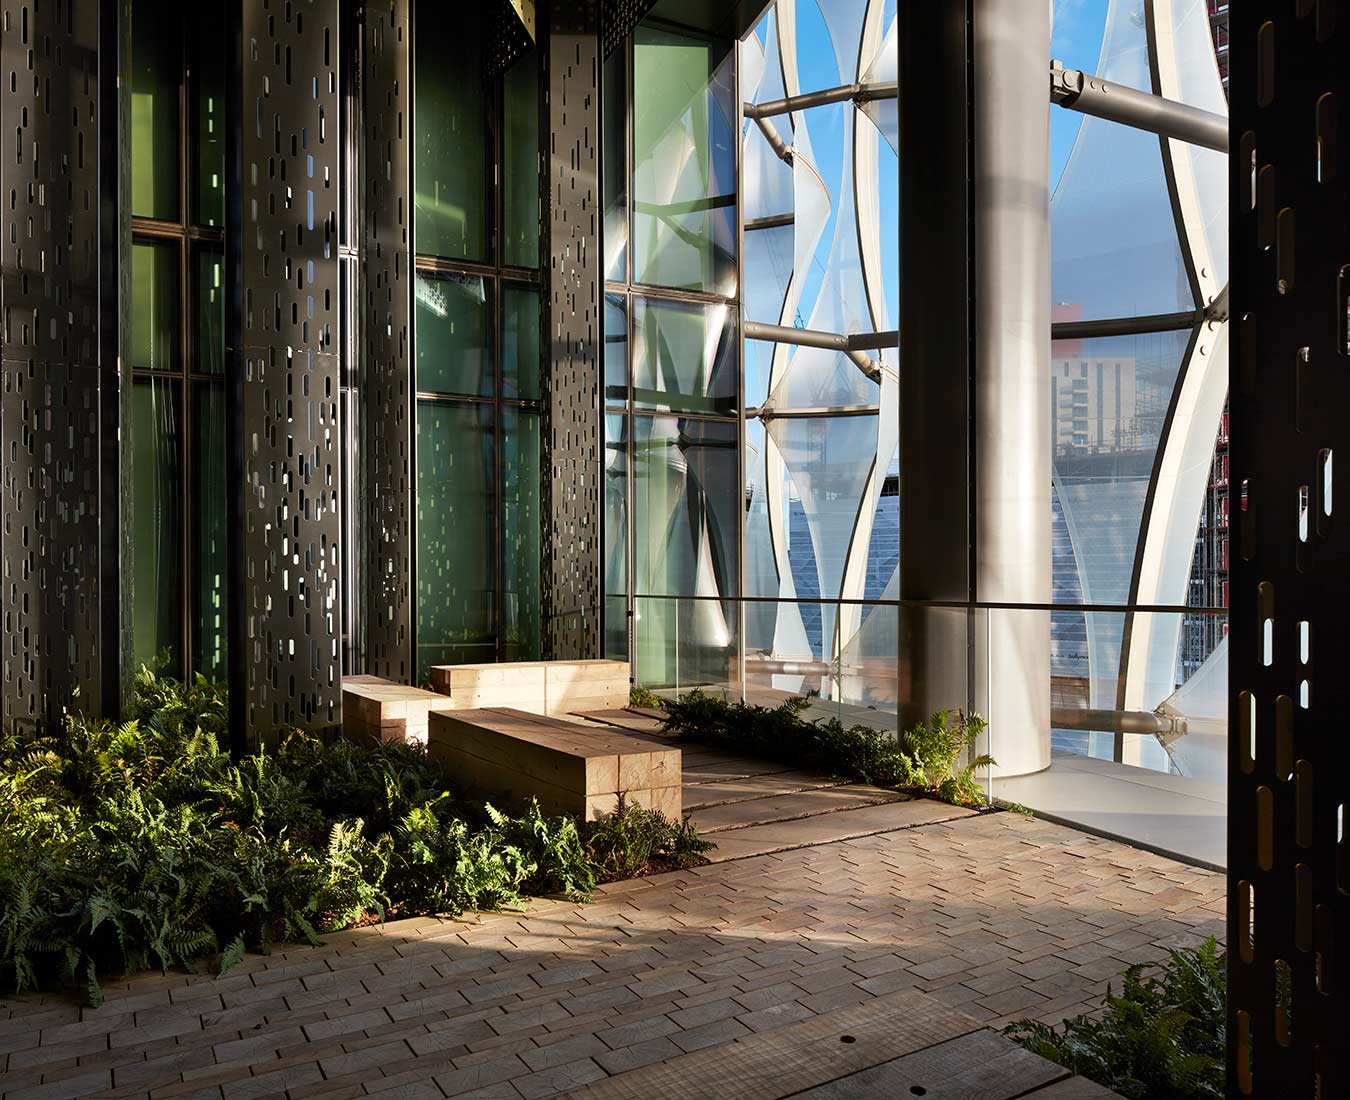 <p>Each of the Embassy's floors contain a garden inspired by a different United States ecosystem. These gardens enhance circulation and provide peaceful places to meet and reflect.<small><br> ©Richard Bryant</small> </p>